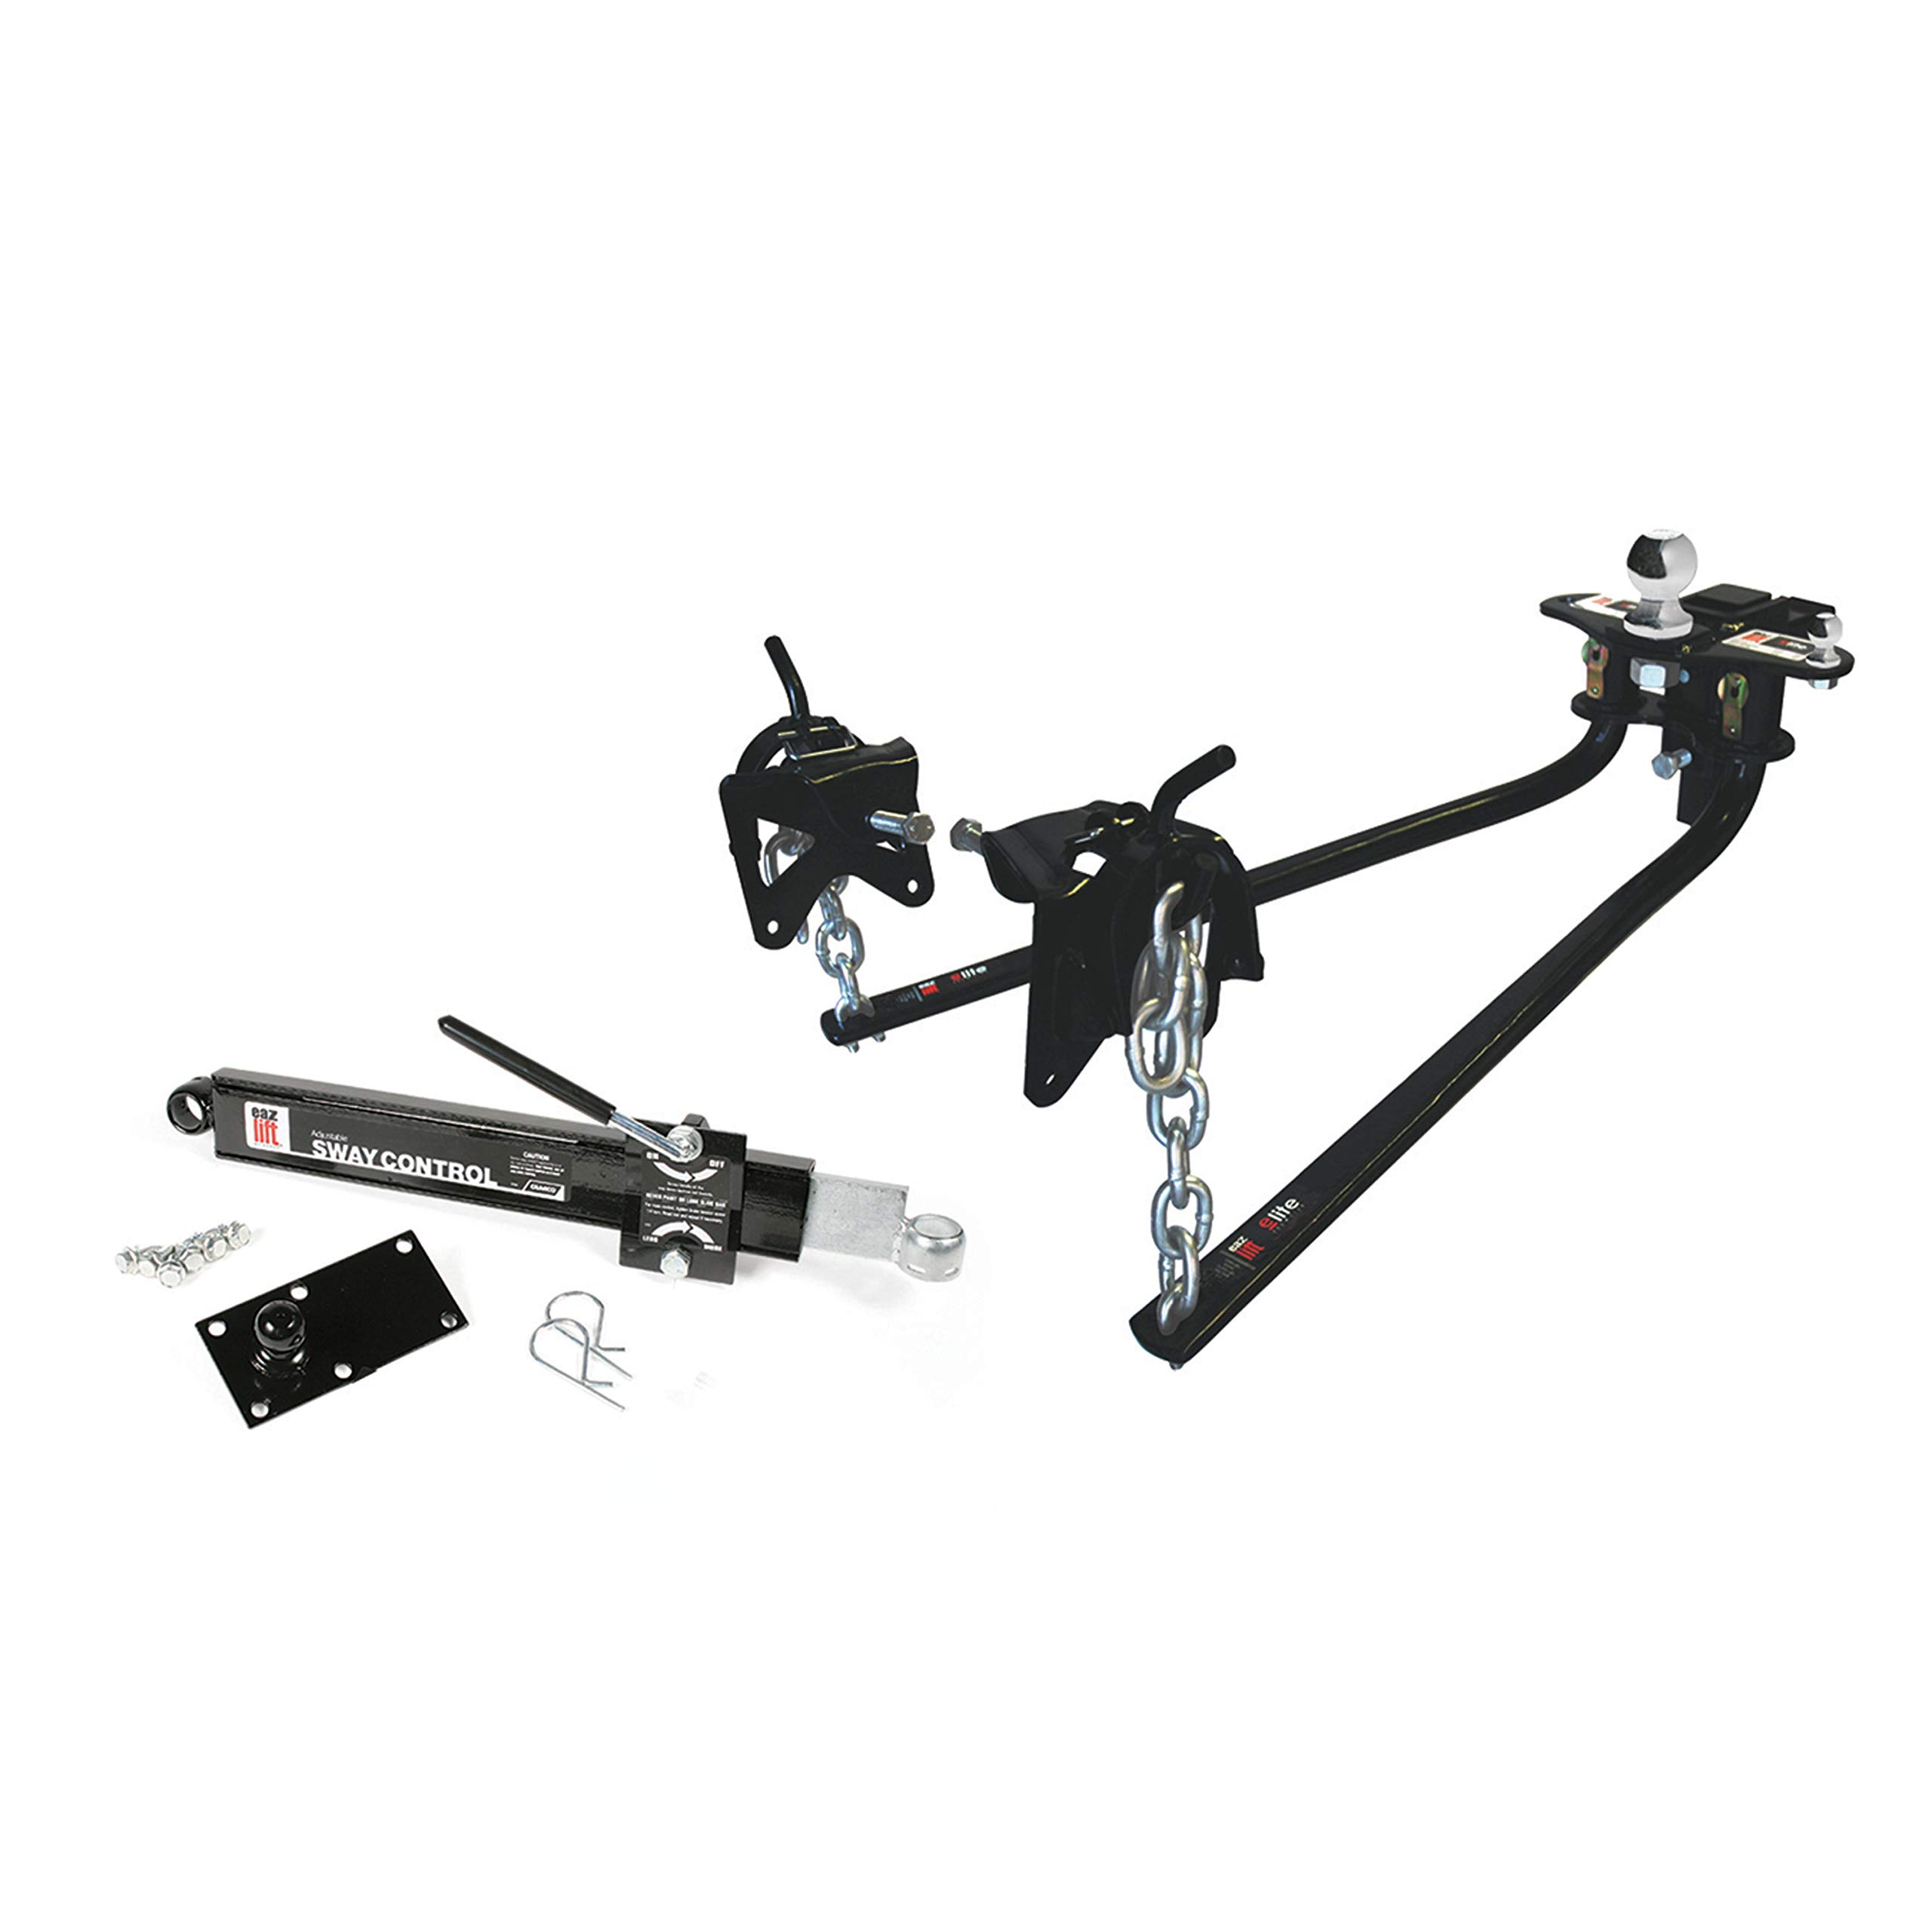 EAZ LIFT 48069 1200 lbs Elite Kit, Includes Distribution, Sway Control and 2-5/16'' Hitch Ball-1,200 lbs Tongue Weight Capacity (48069) by EAZ LIFT